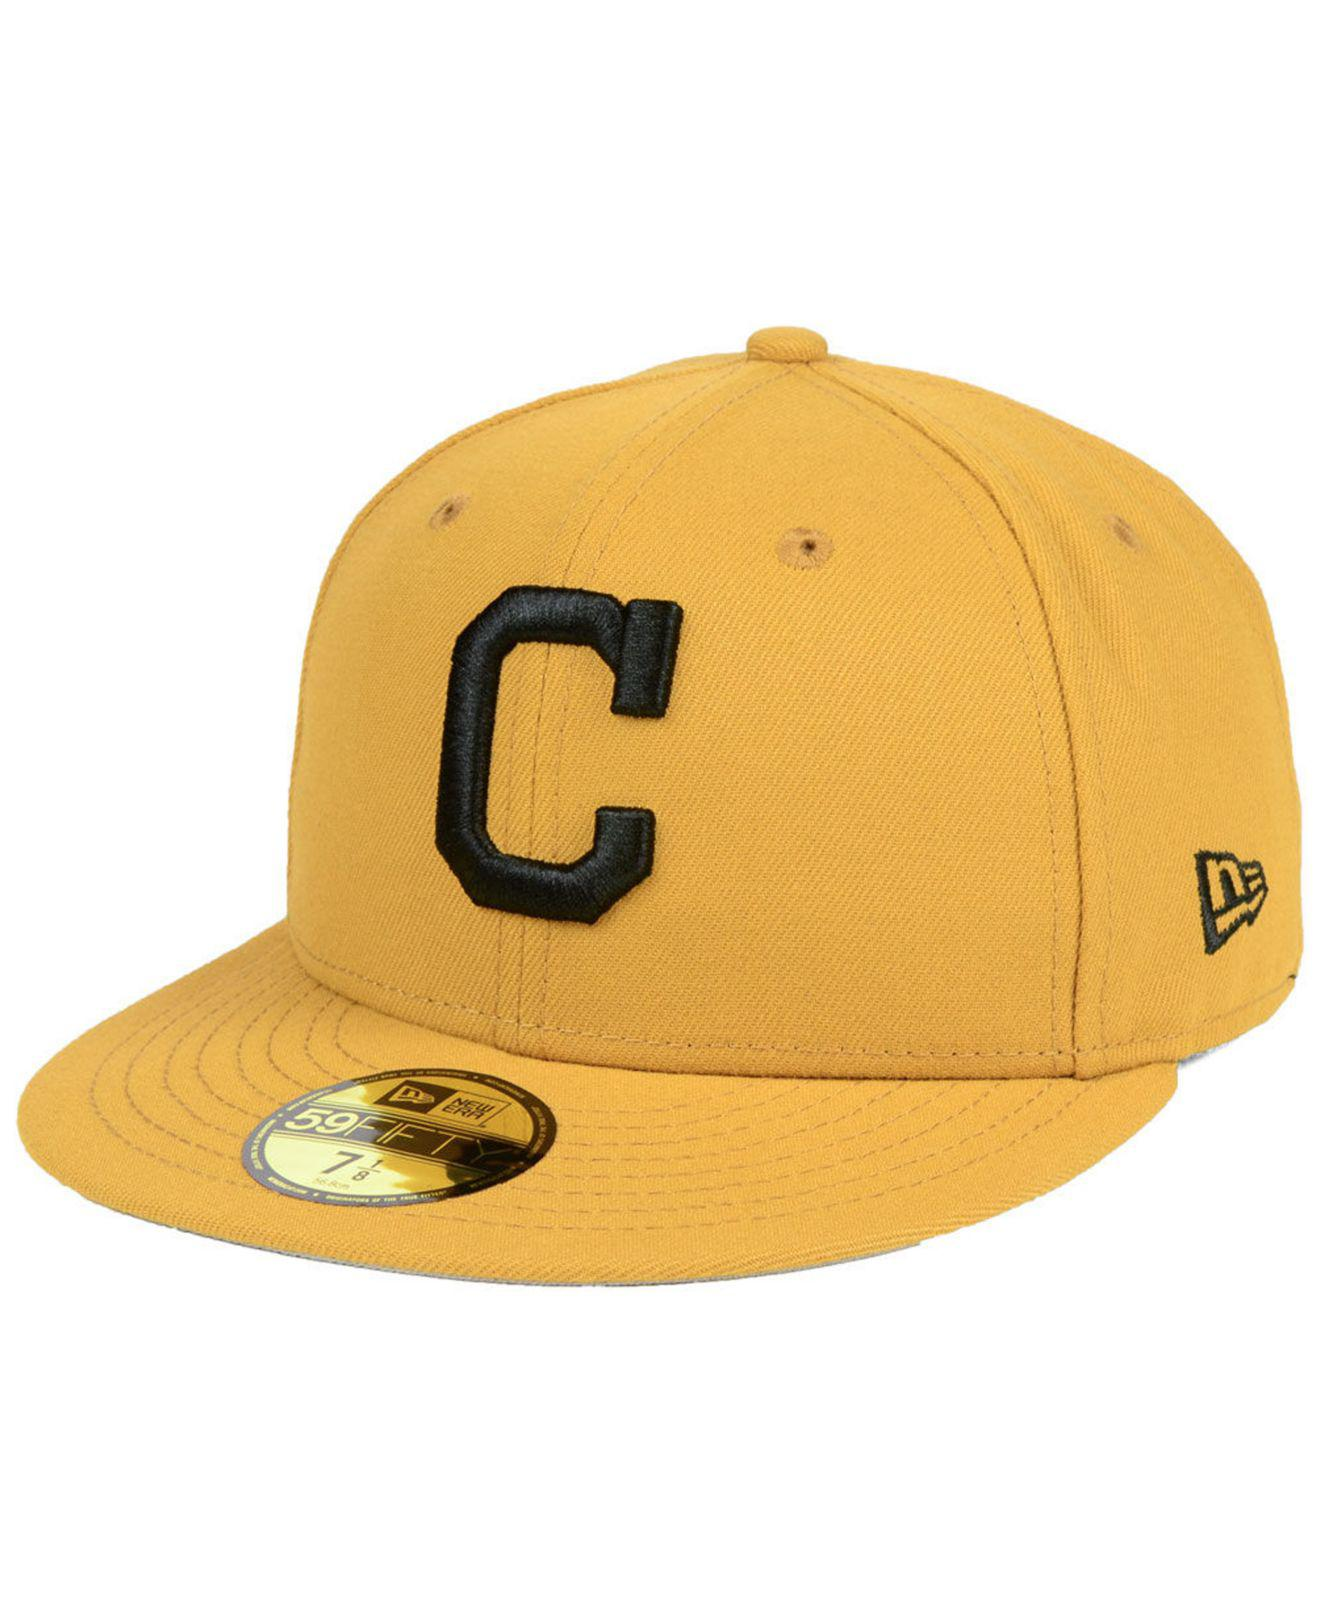 wholesale dealer 83ce9 8425c ... low price ktz. mens yellow cleveland indians reverse c dub 59fifty  fitted cap 49613 69bd1